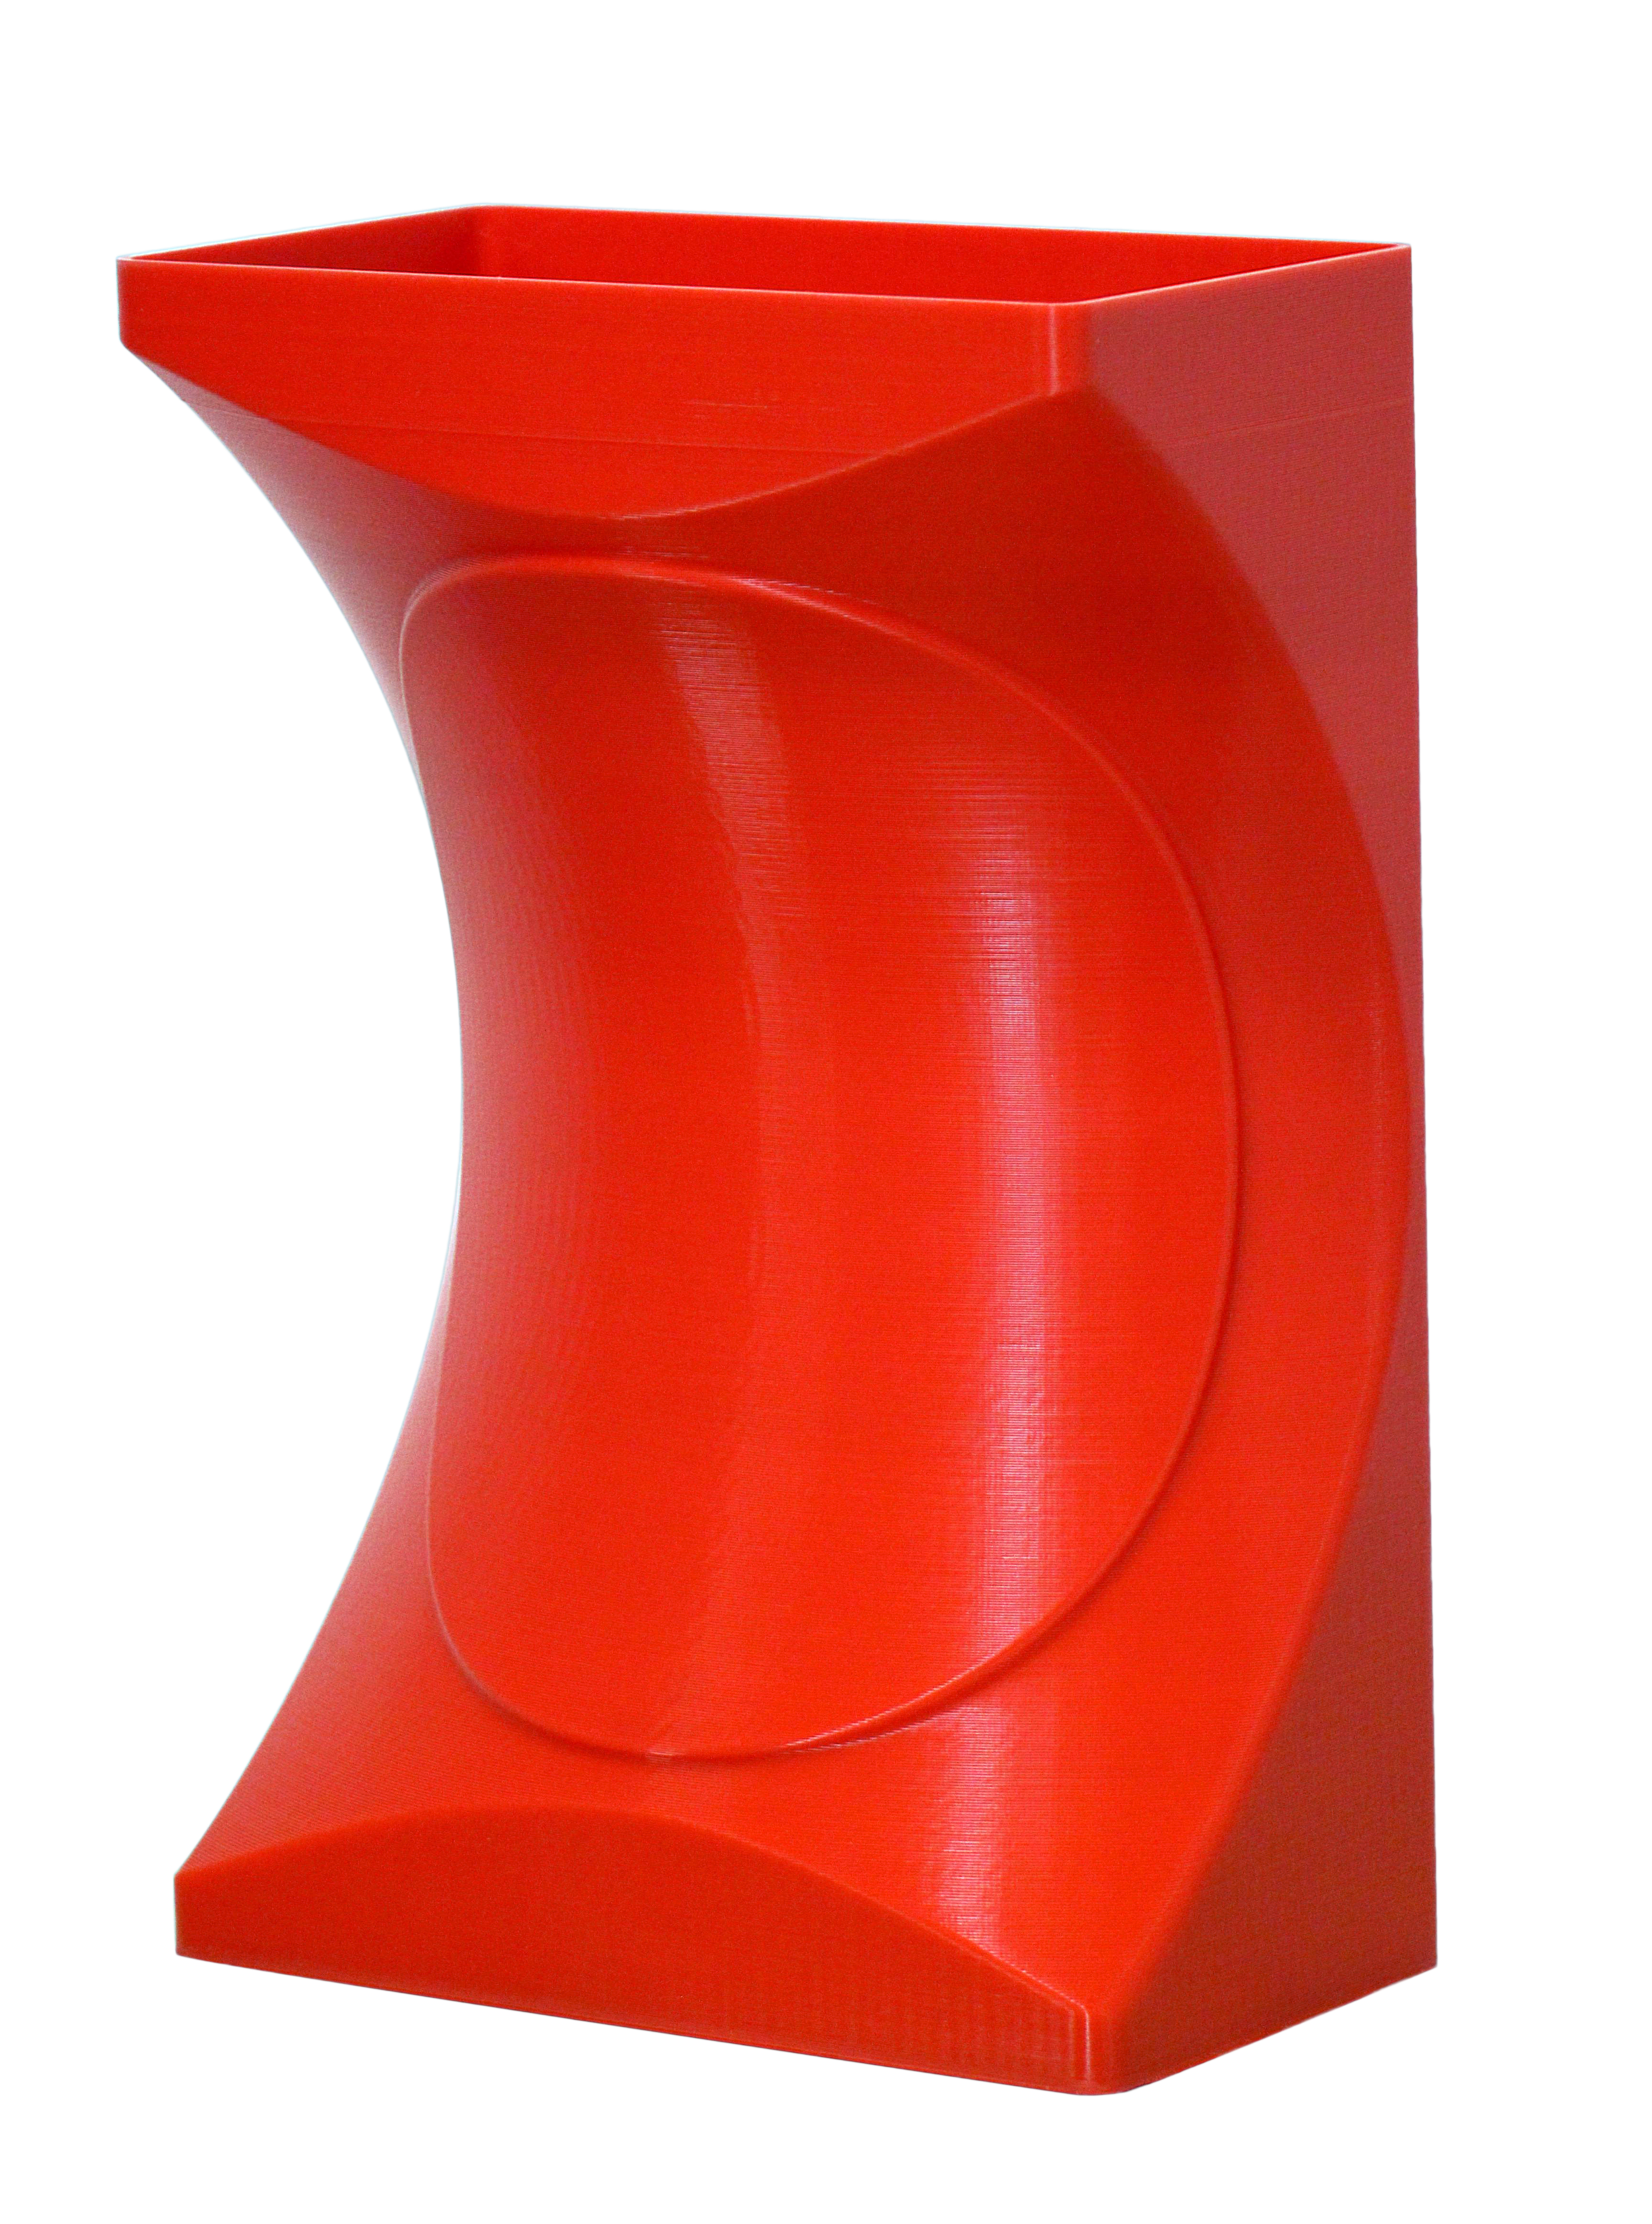 Red2_transparent.png